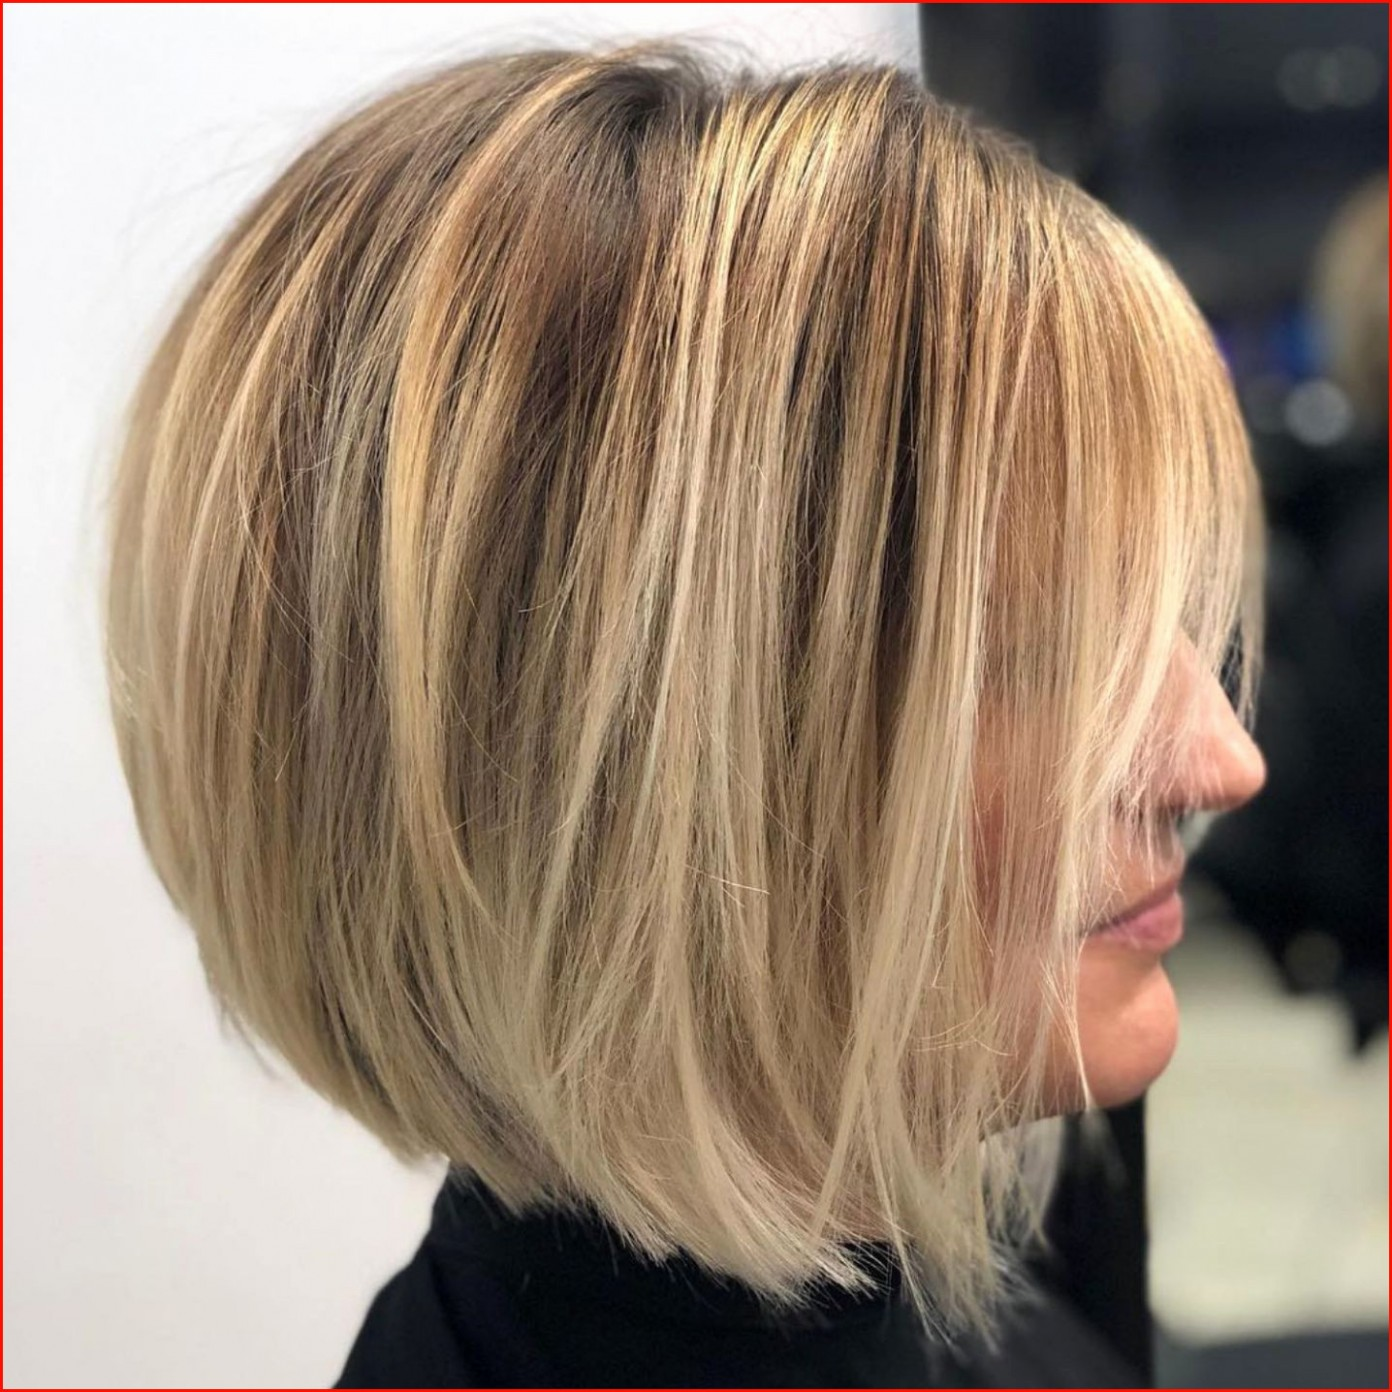 Cool Layered Wedge Hairstyle Photos Of Hairstyles Style 10 Medium Length Wedge Haircuts